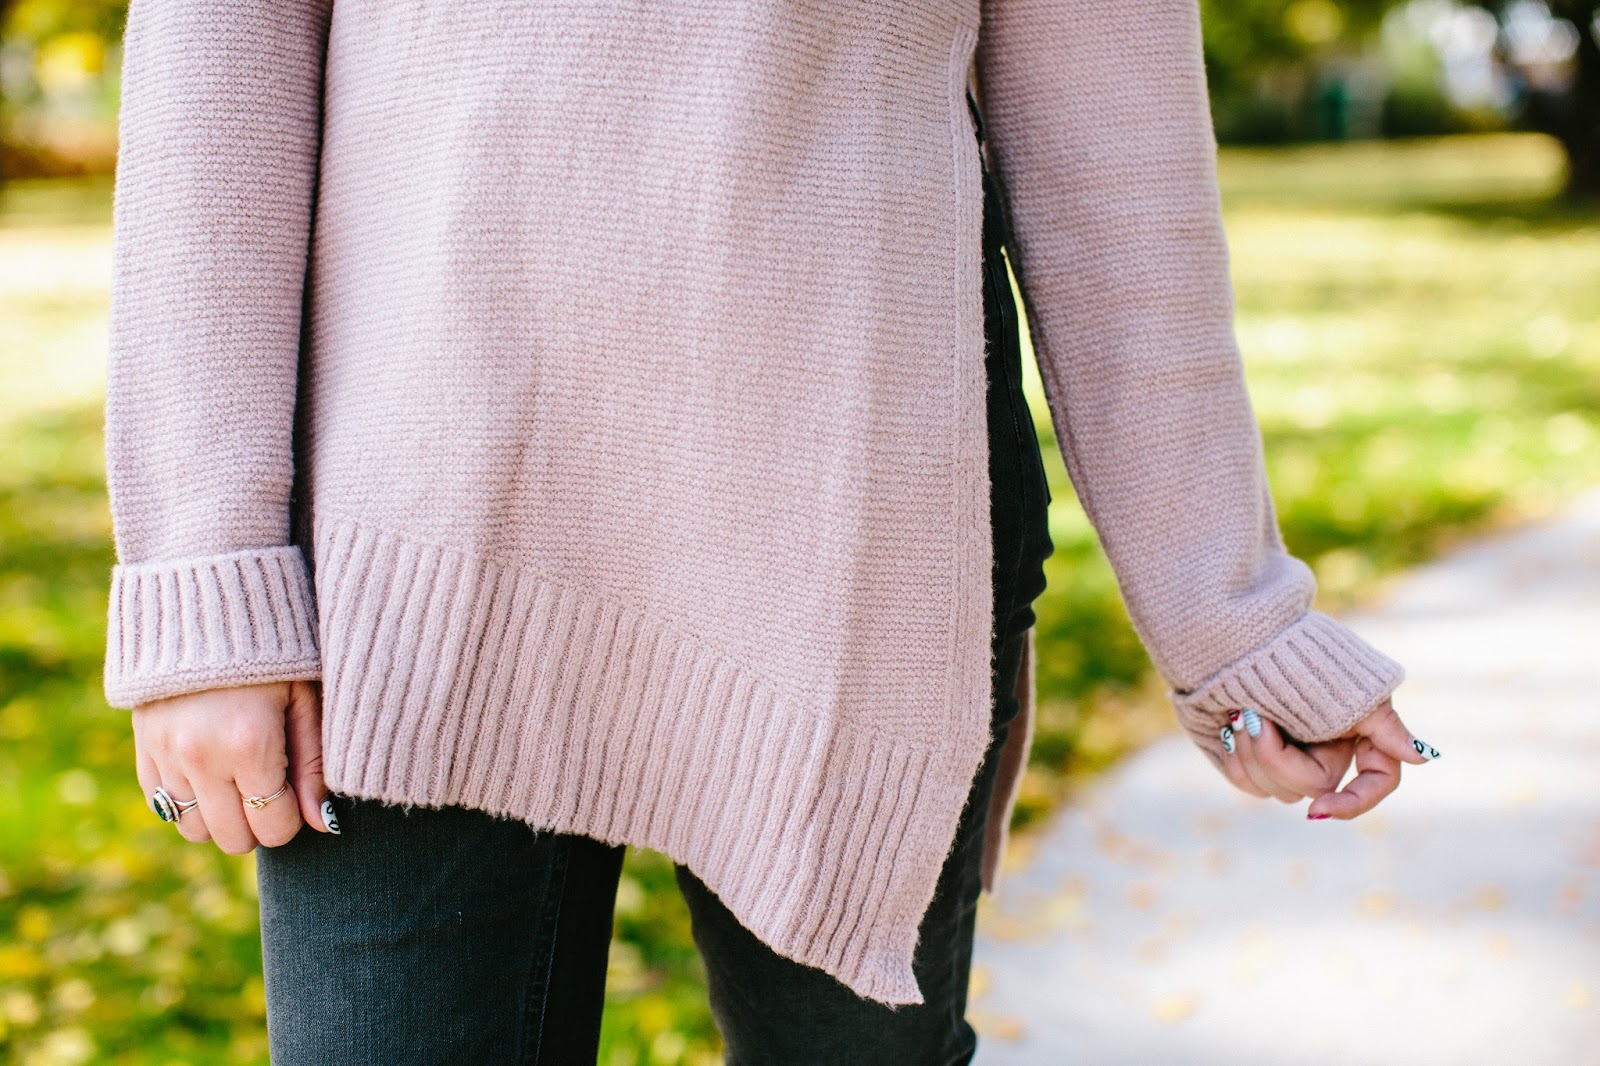 Longline Sweater, Pink Sweater, Long Tall Sally